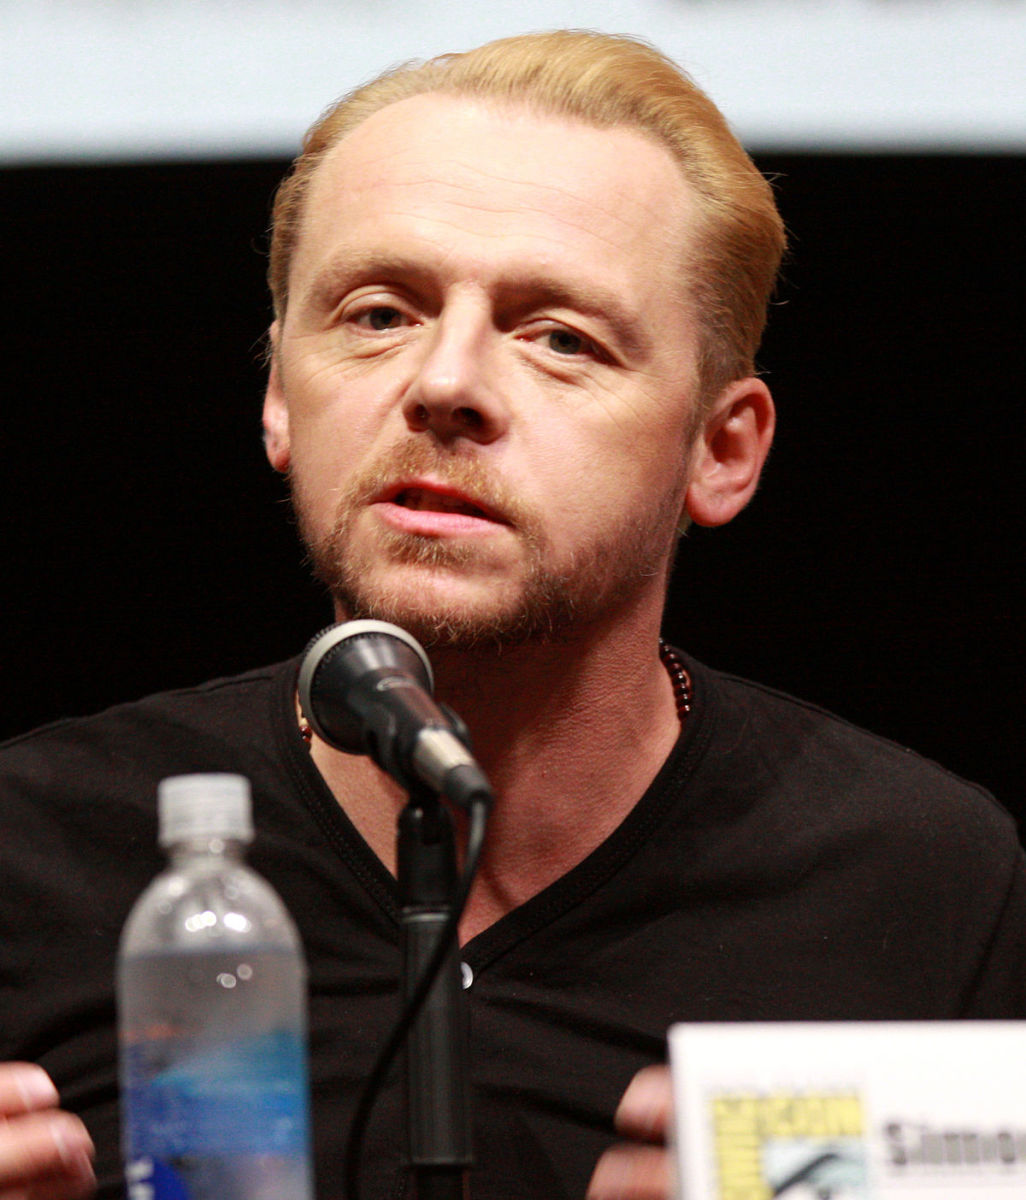 Future A-lister and Hollywood's arch-nerd Simon Pegg is one of a number of people presumably embarrassed by their cameo appearance.